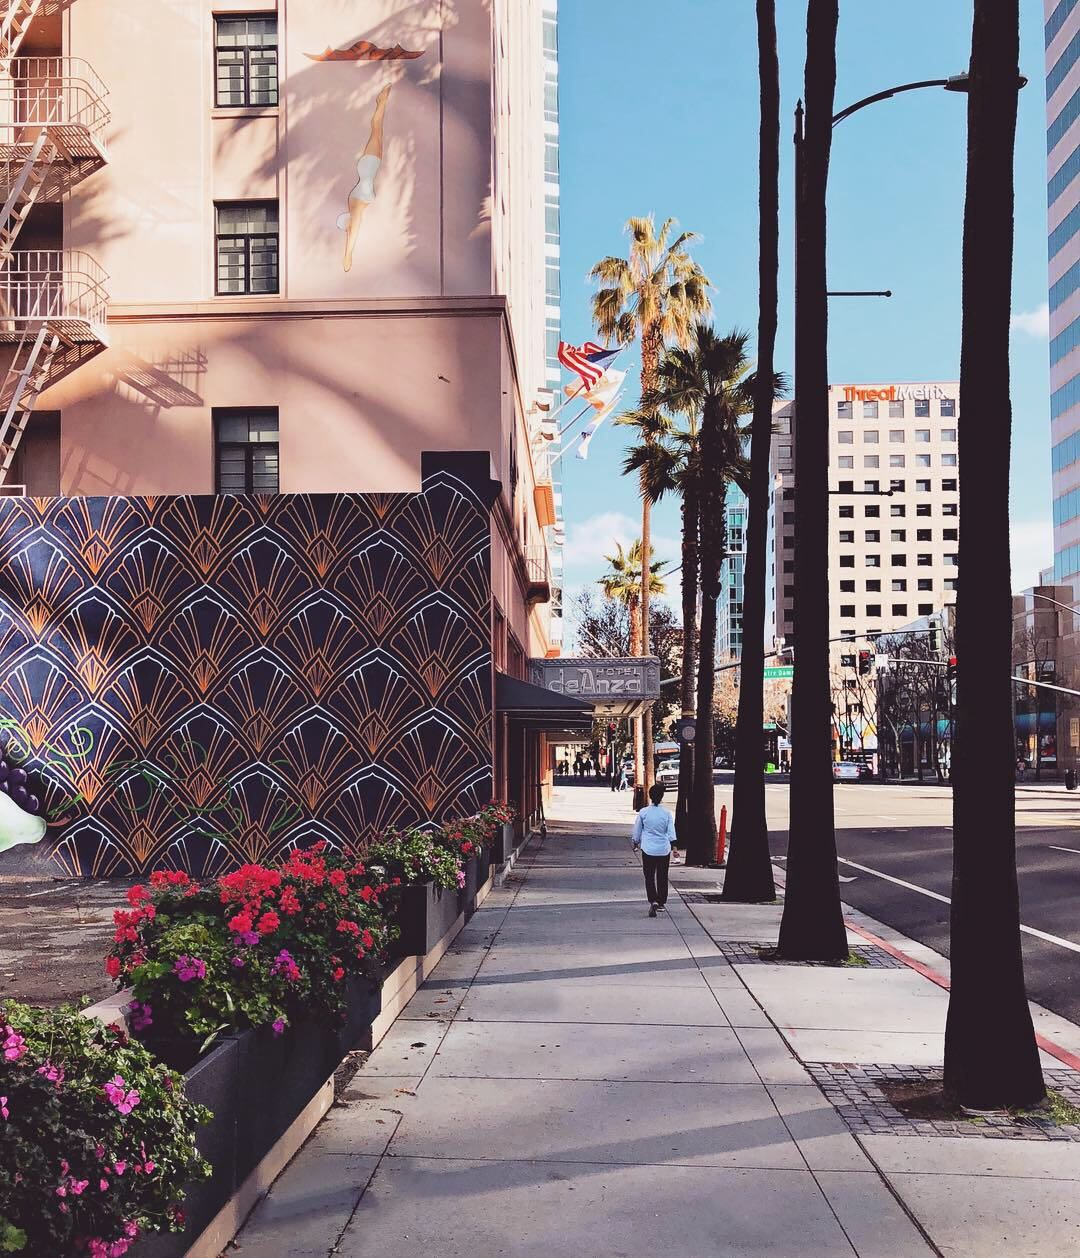 📷: Nimble. Elsewhere'g from Downtown San Jose while on a research visit